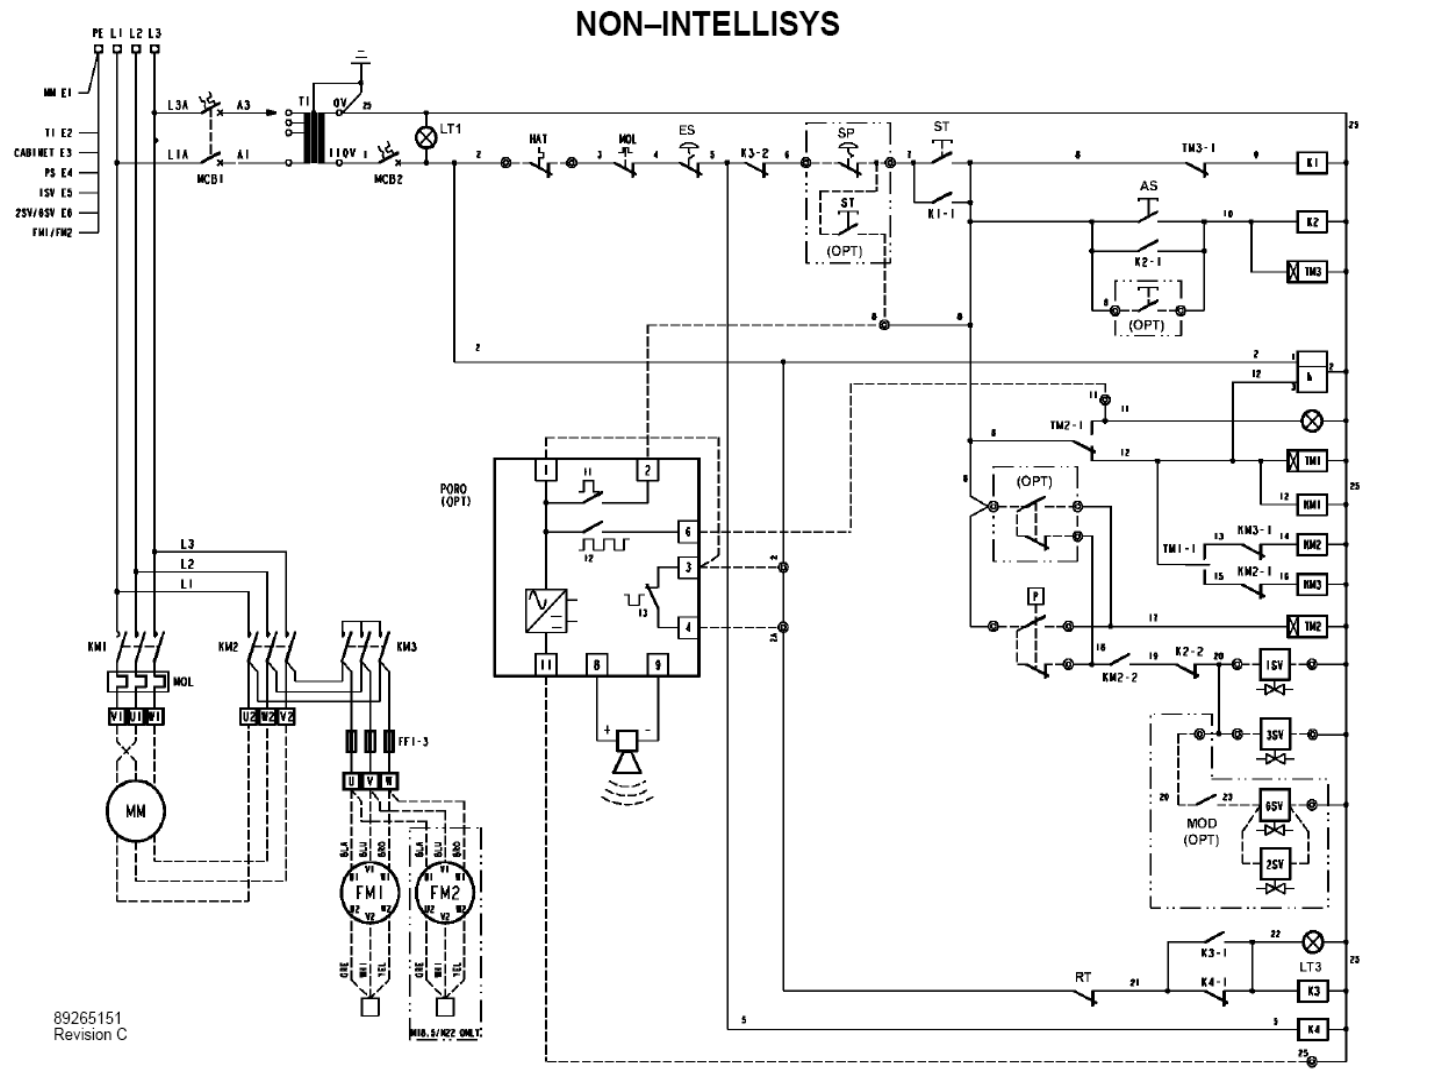 Ingersoll Rand X41 Users Manual Wiring Diagram Roller Ssr M15 22c 20 30hp Xf Ep Hp Hxp 50 60hz